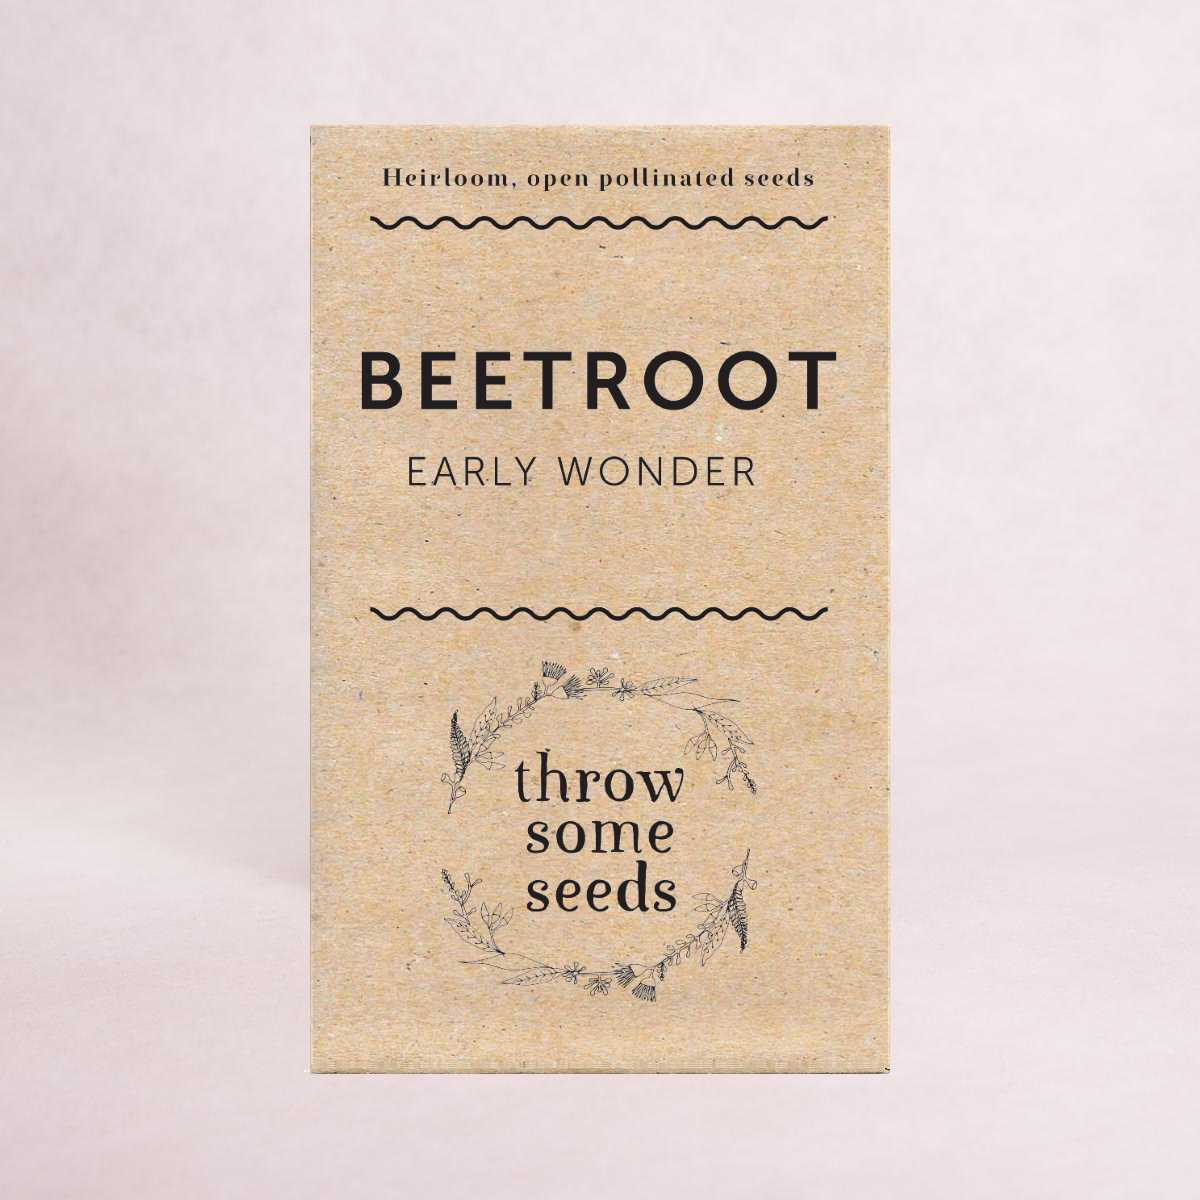 Beetroot (Early Wonder) - Heirloom Seeds - Seeds - Throw Some Seeds